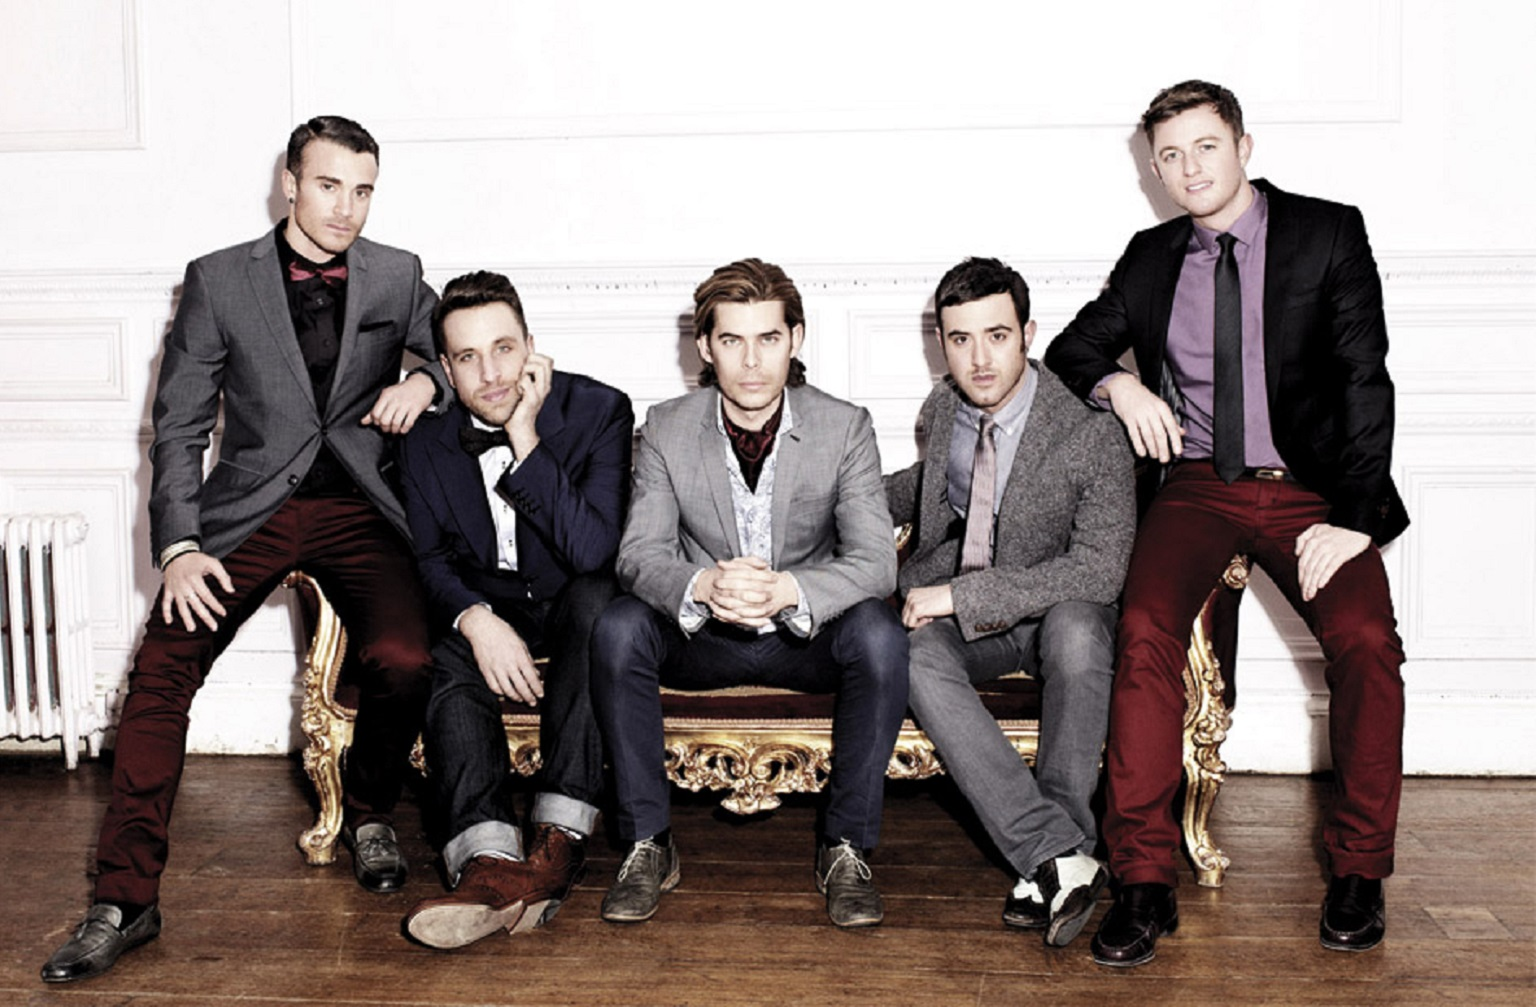 Talking skydives, Xbox and Christmas with Mike from The Overtones